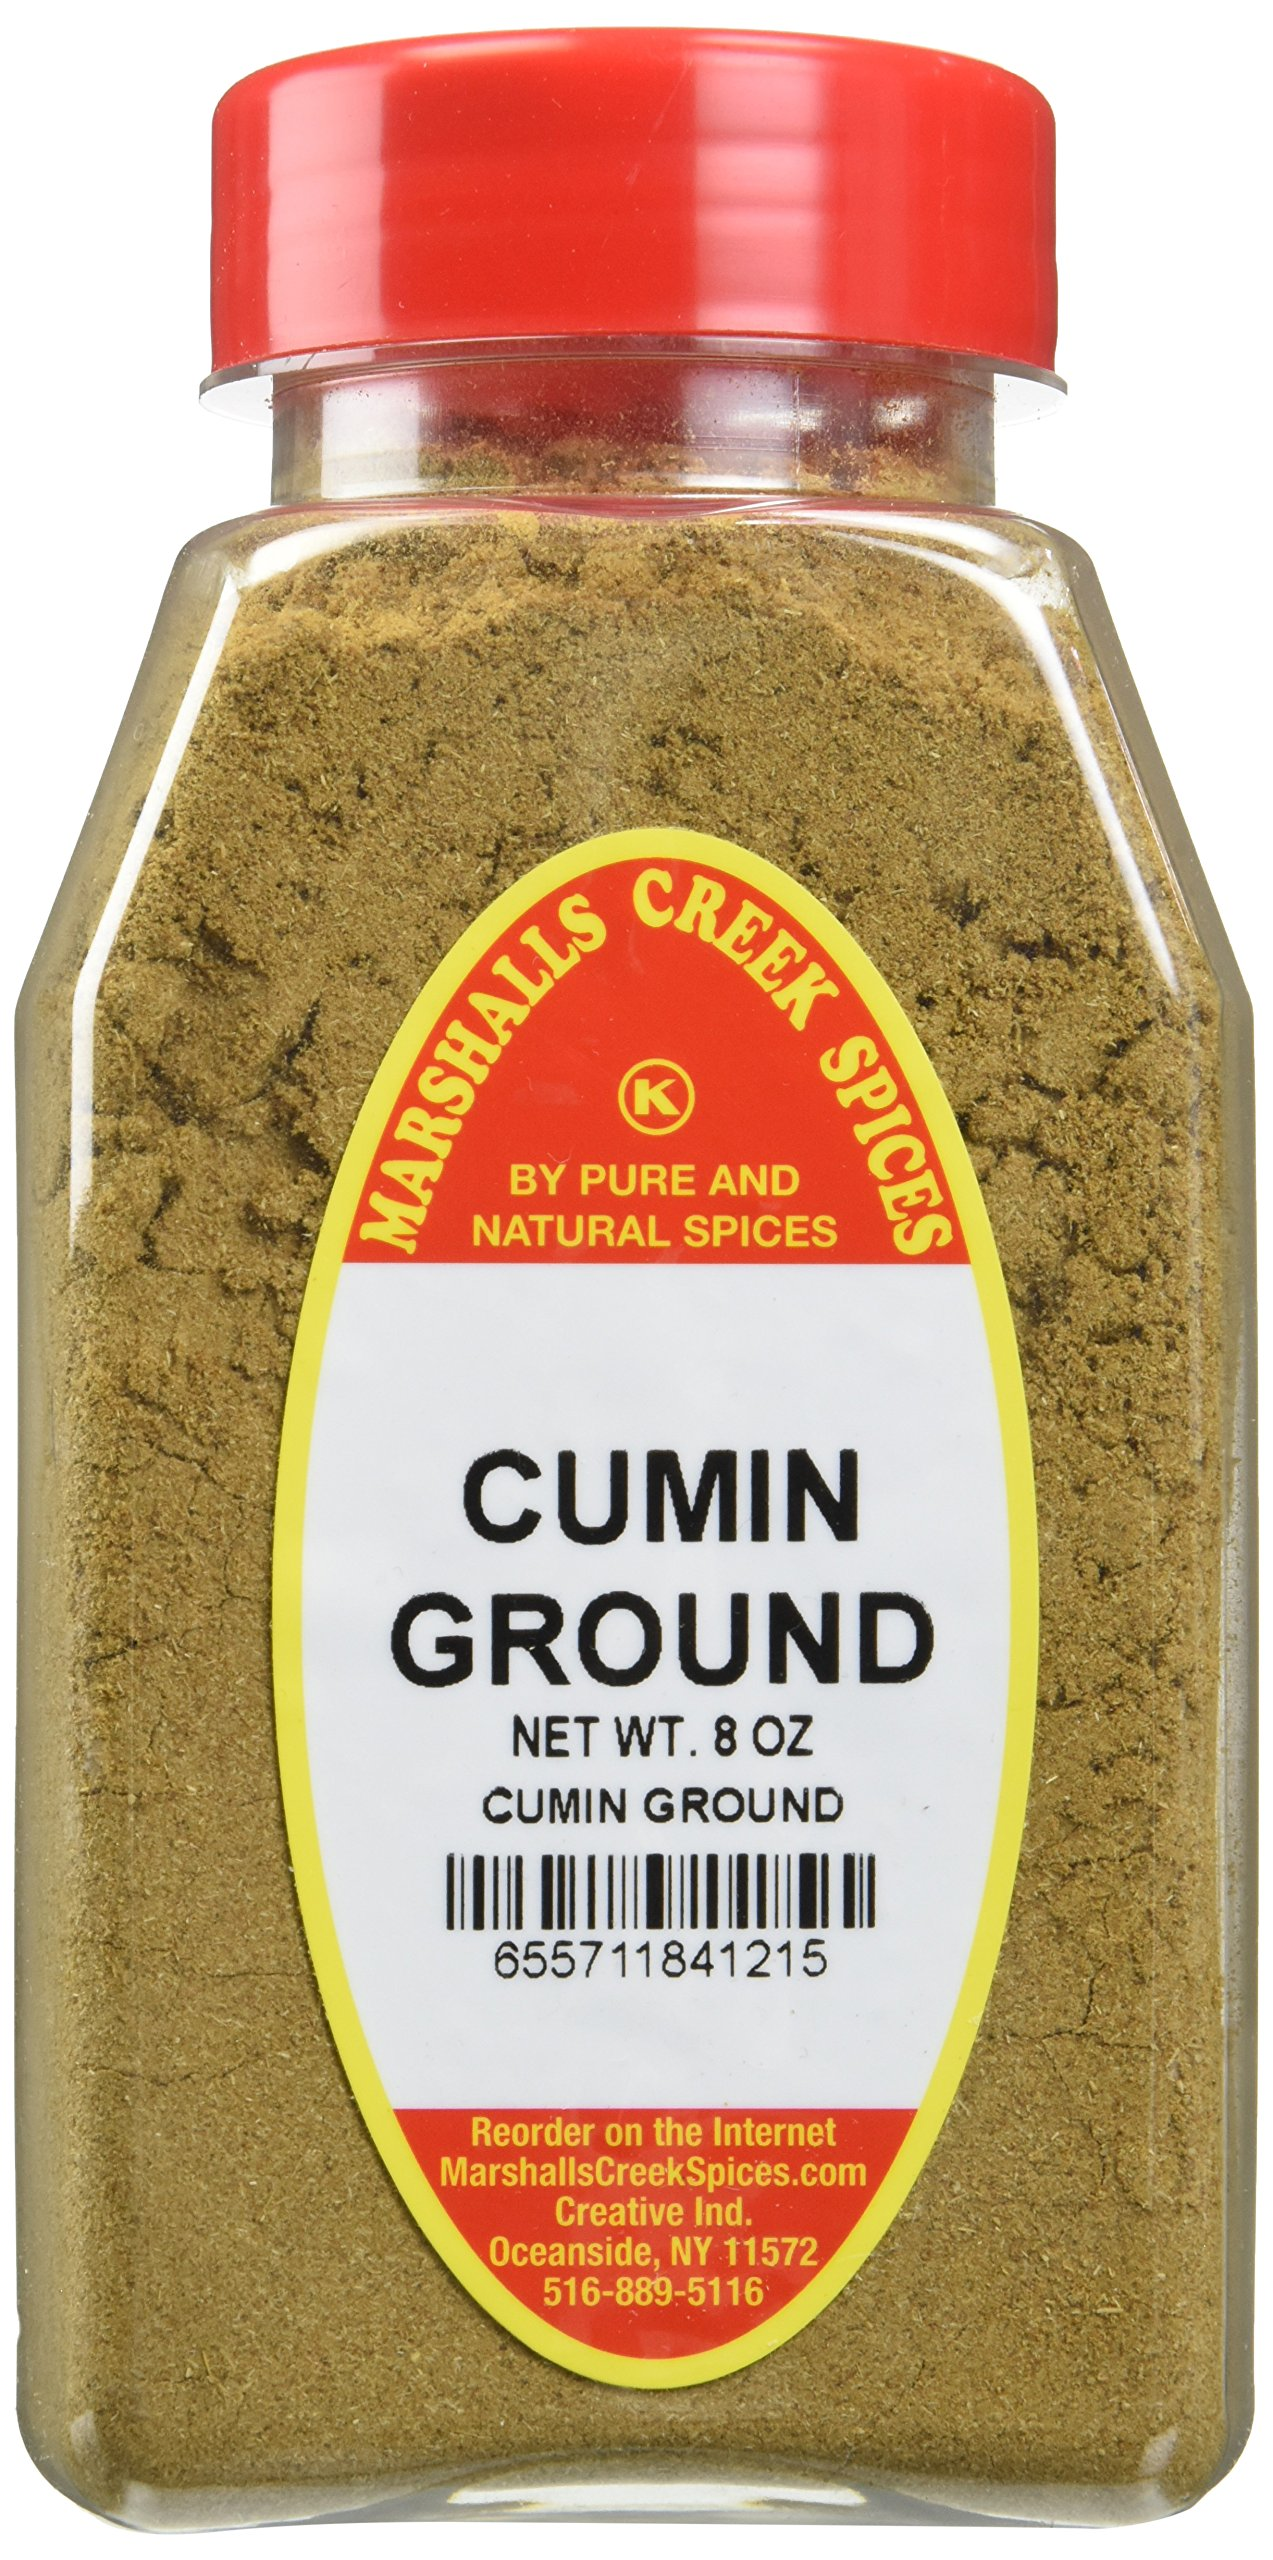 CUMIN GROUND FRESHLY PACKED IN LARGE JARS, comino, spices, herbs, seasonings, 8 ounce